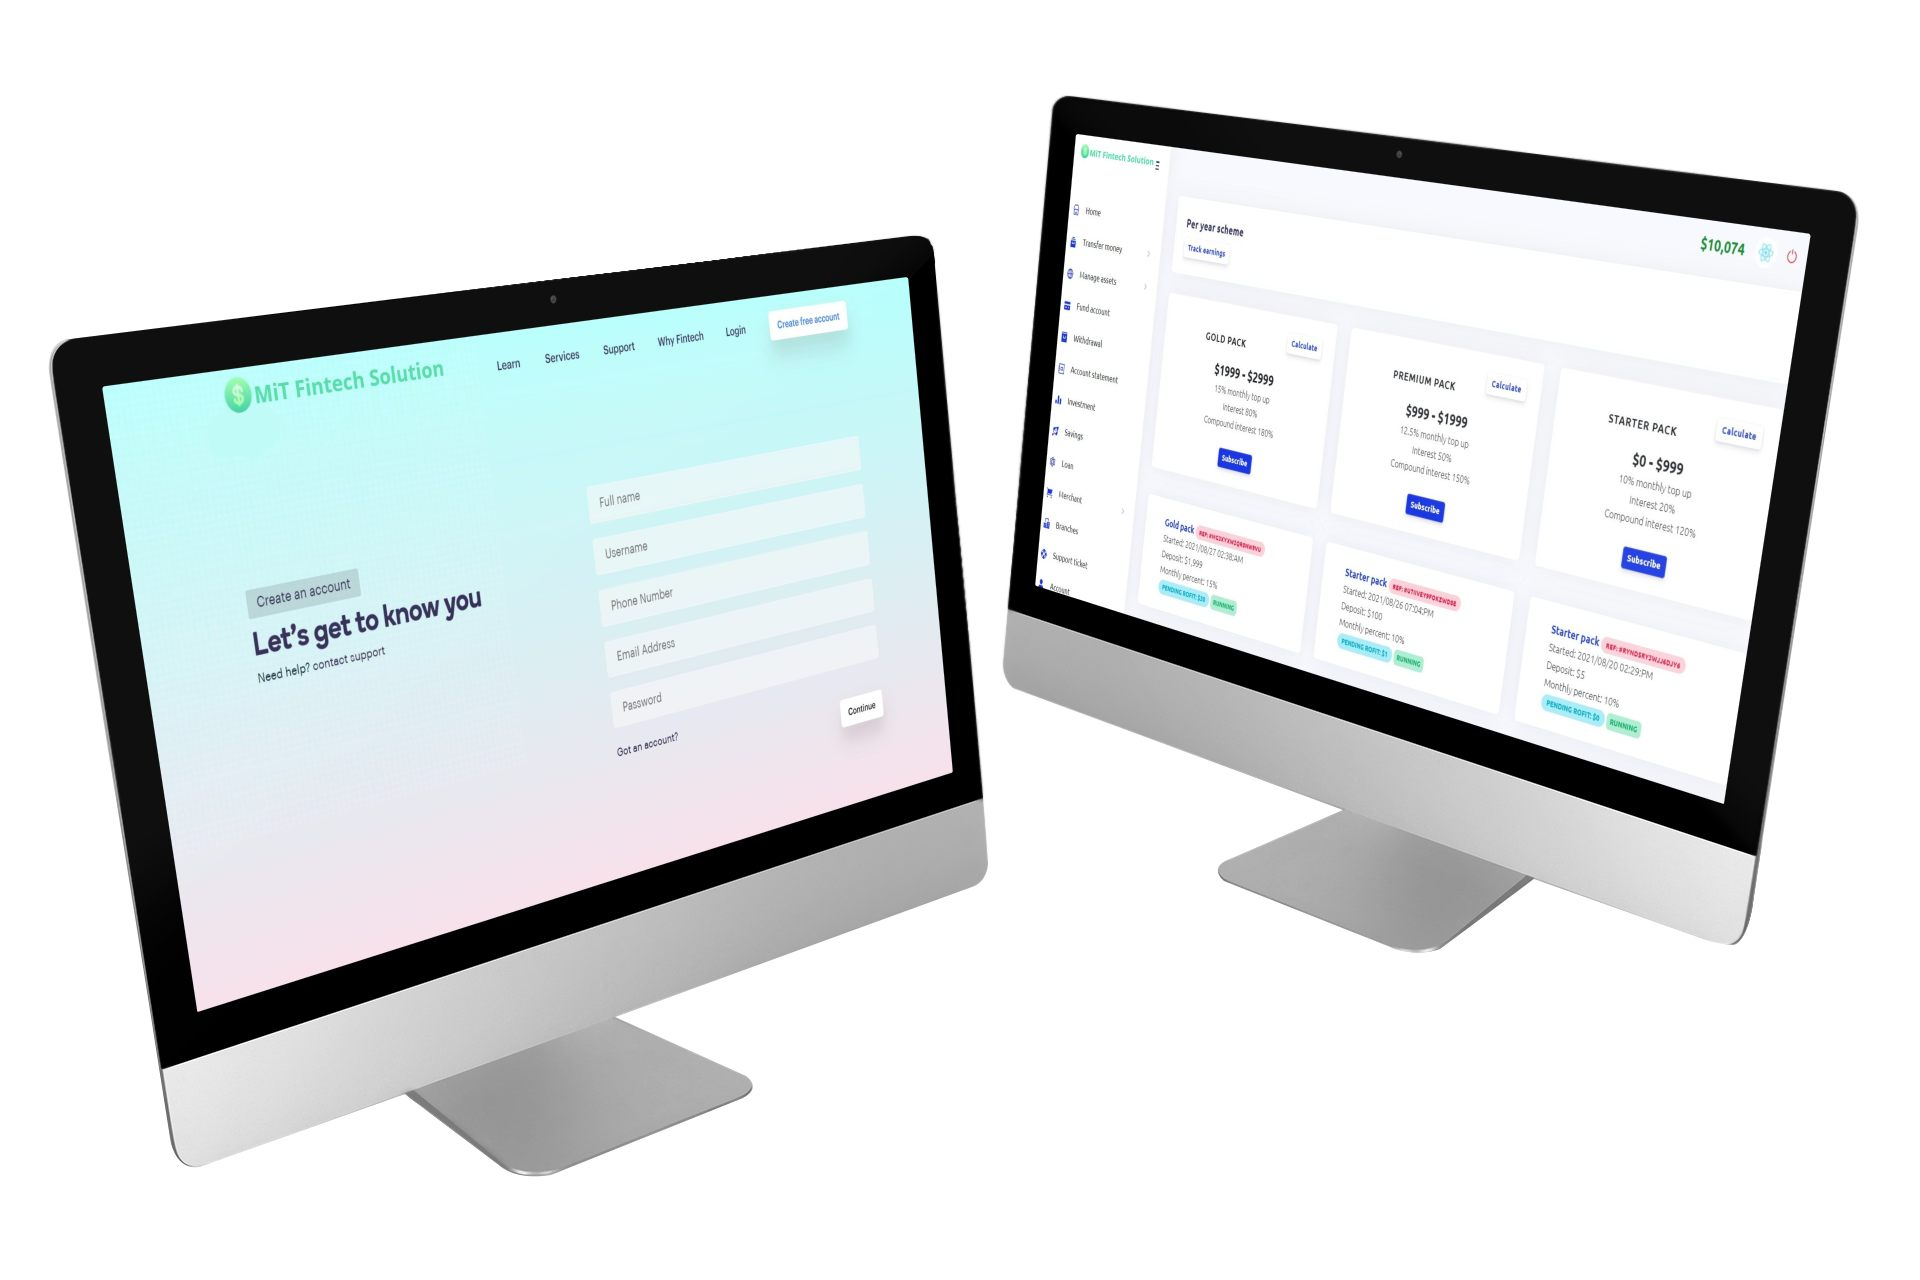 mockup of two imac renders placed next to each other in a customizable setting 5154 el1 3 MiT Fintech Solution